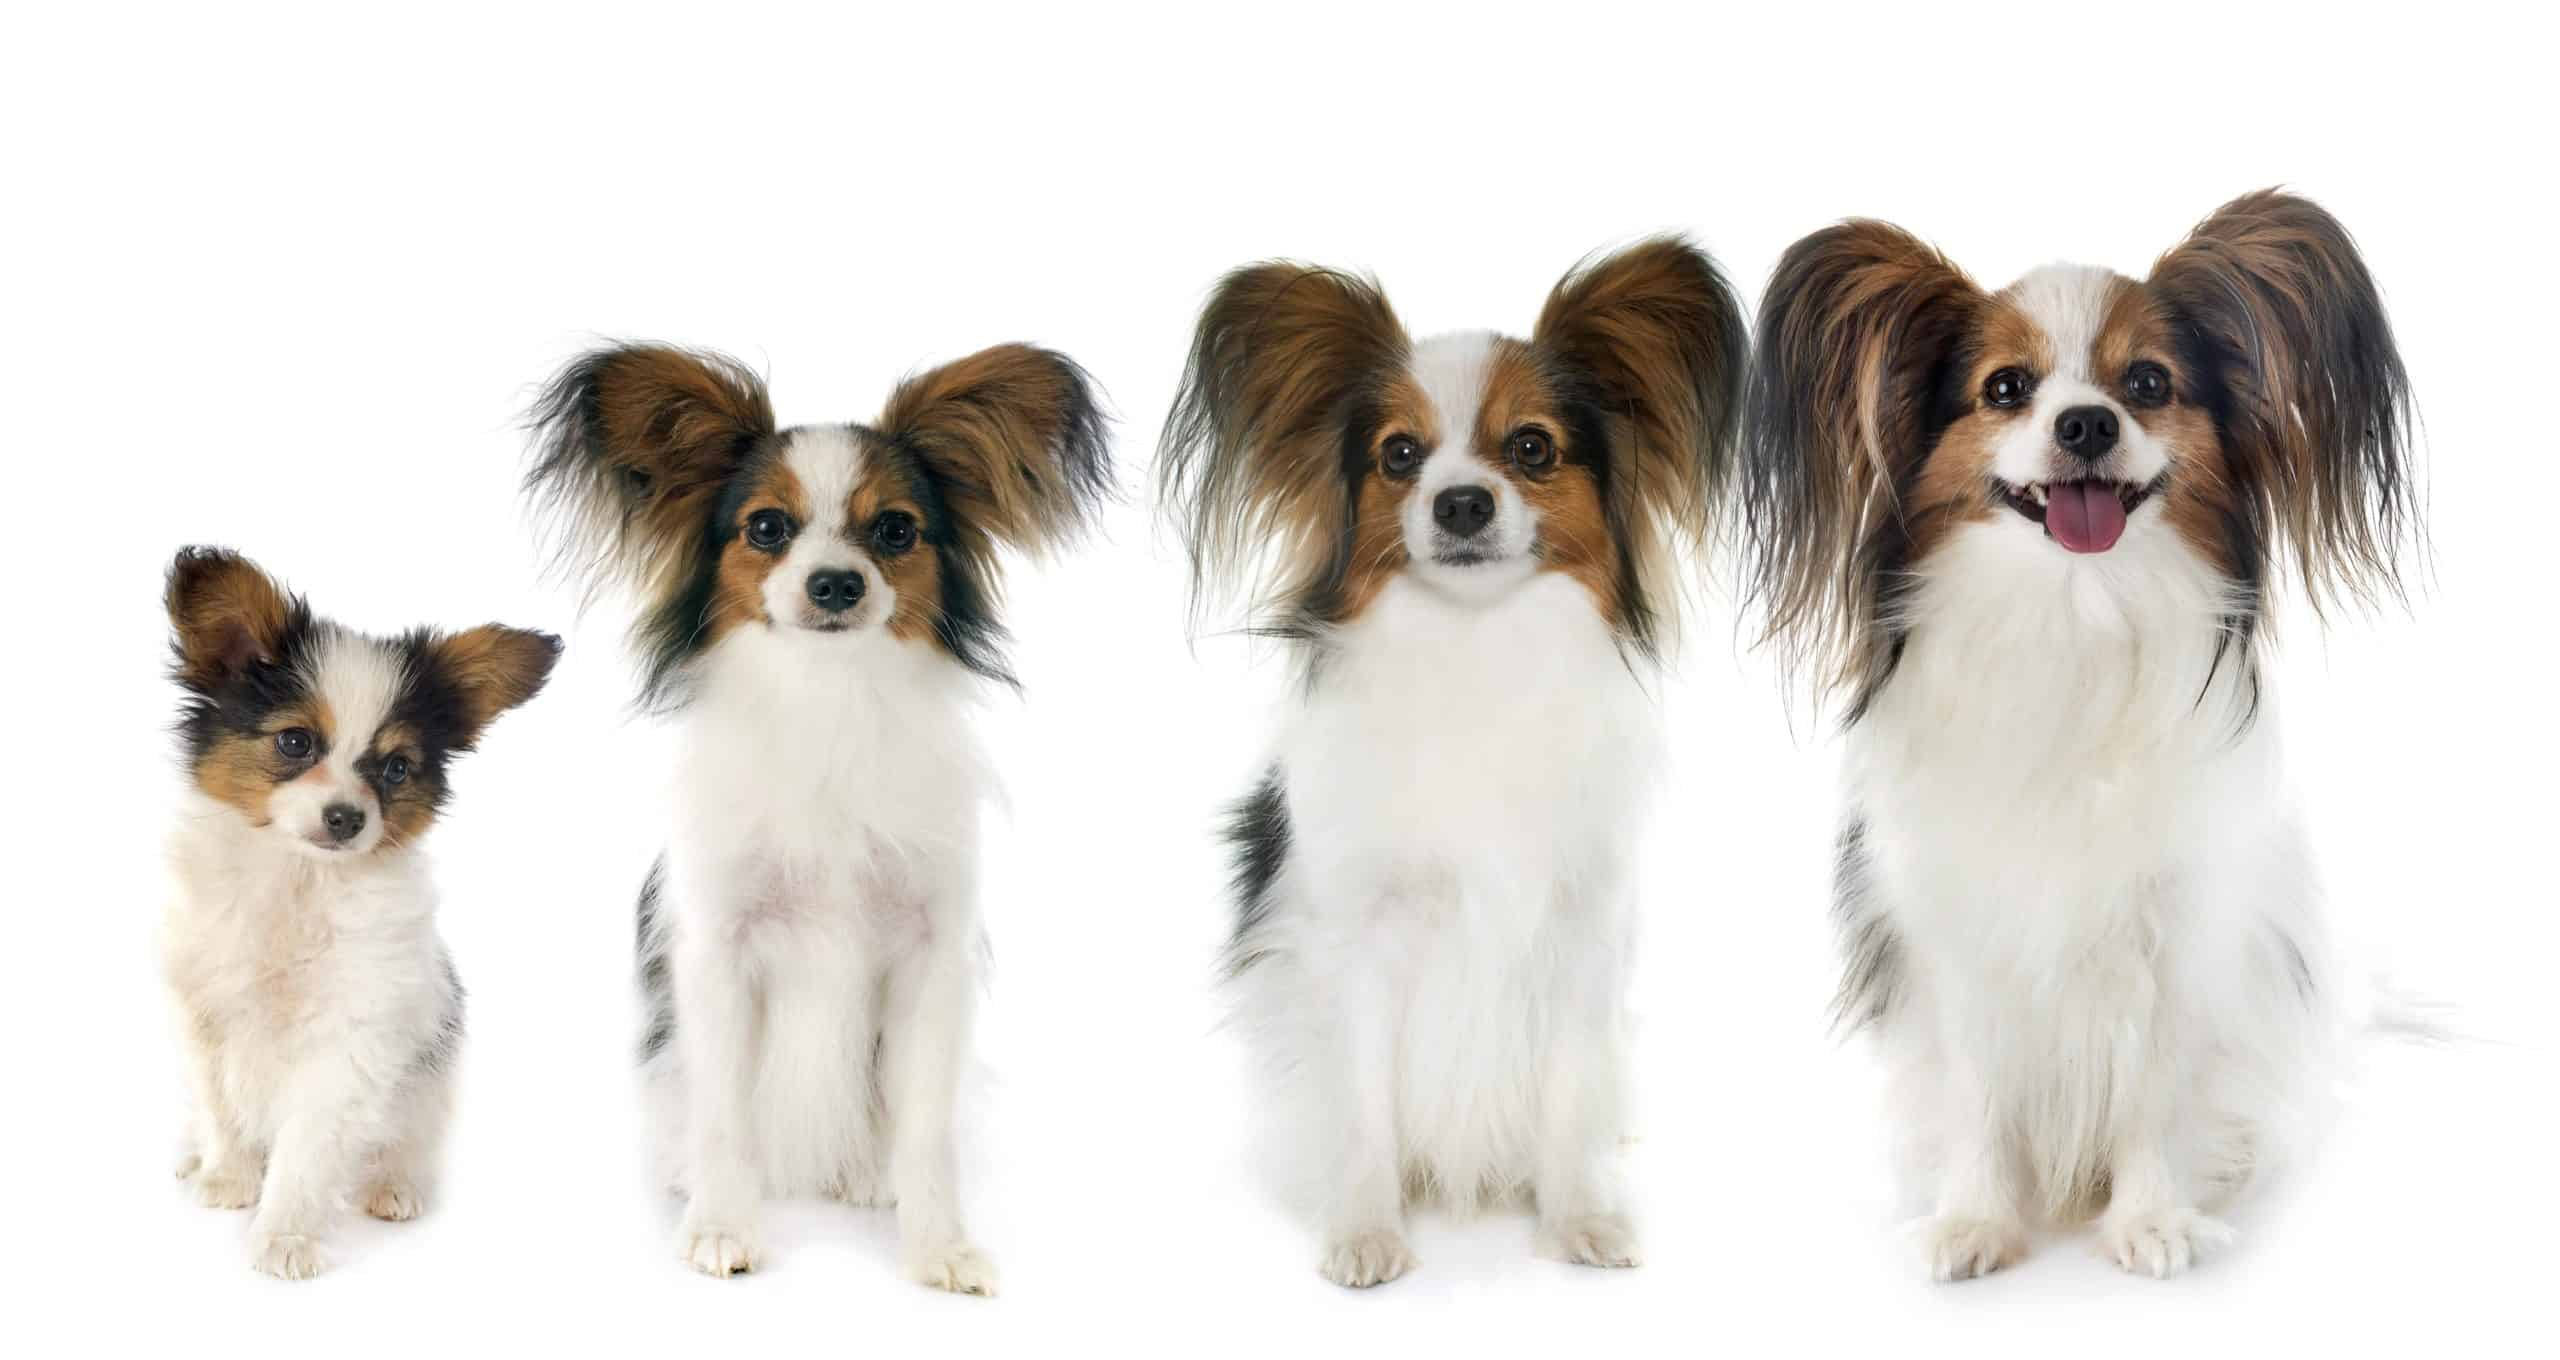 Photo illustration shows Papillon from puppy to full grown.